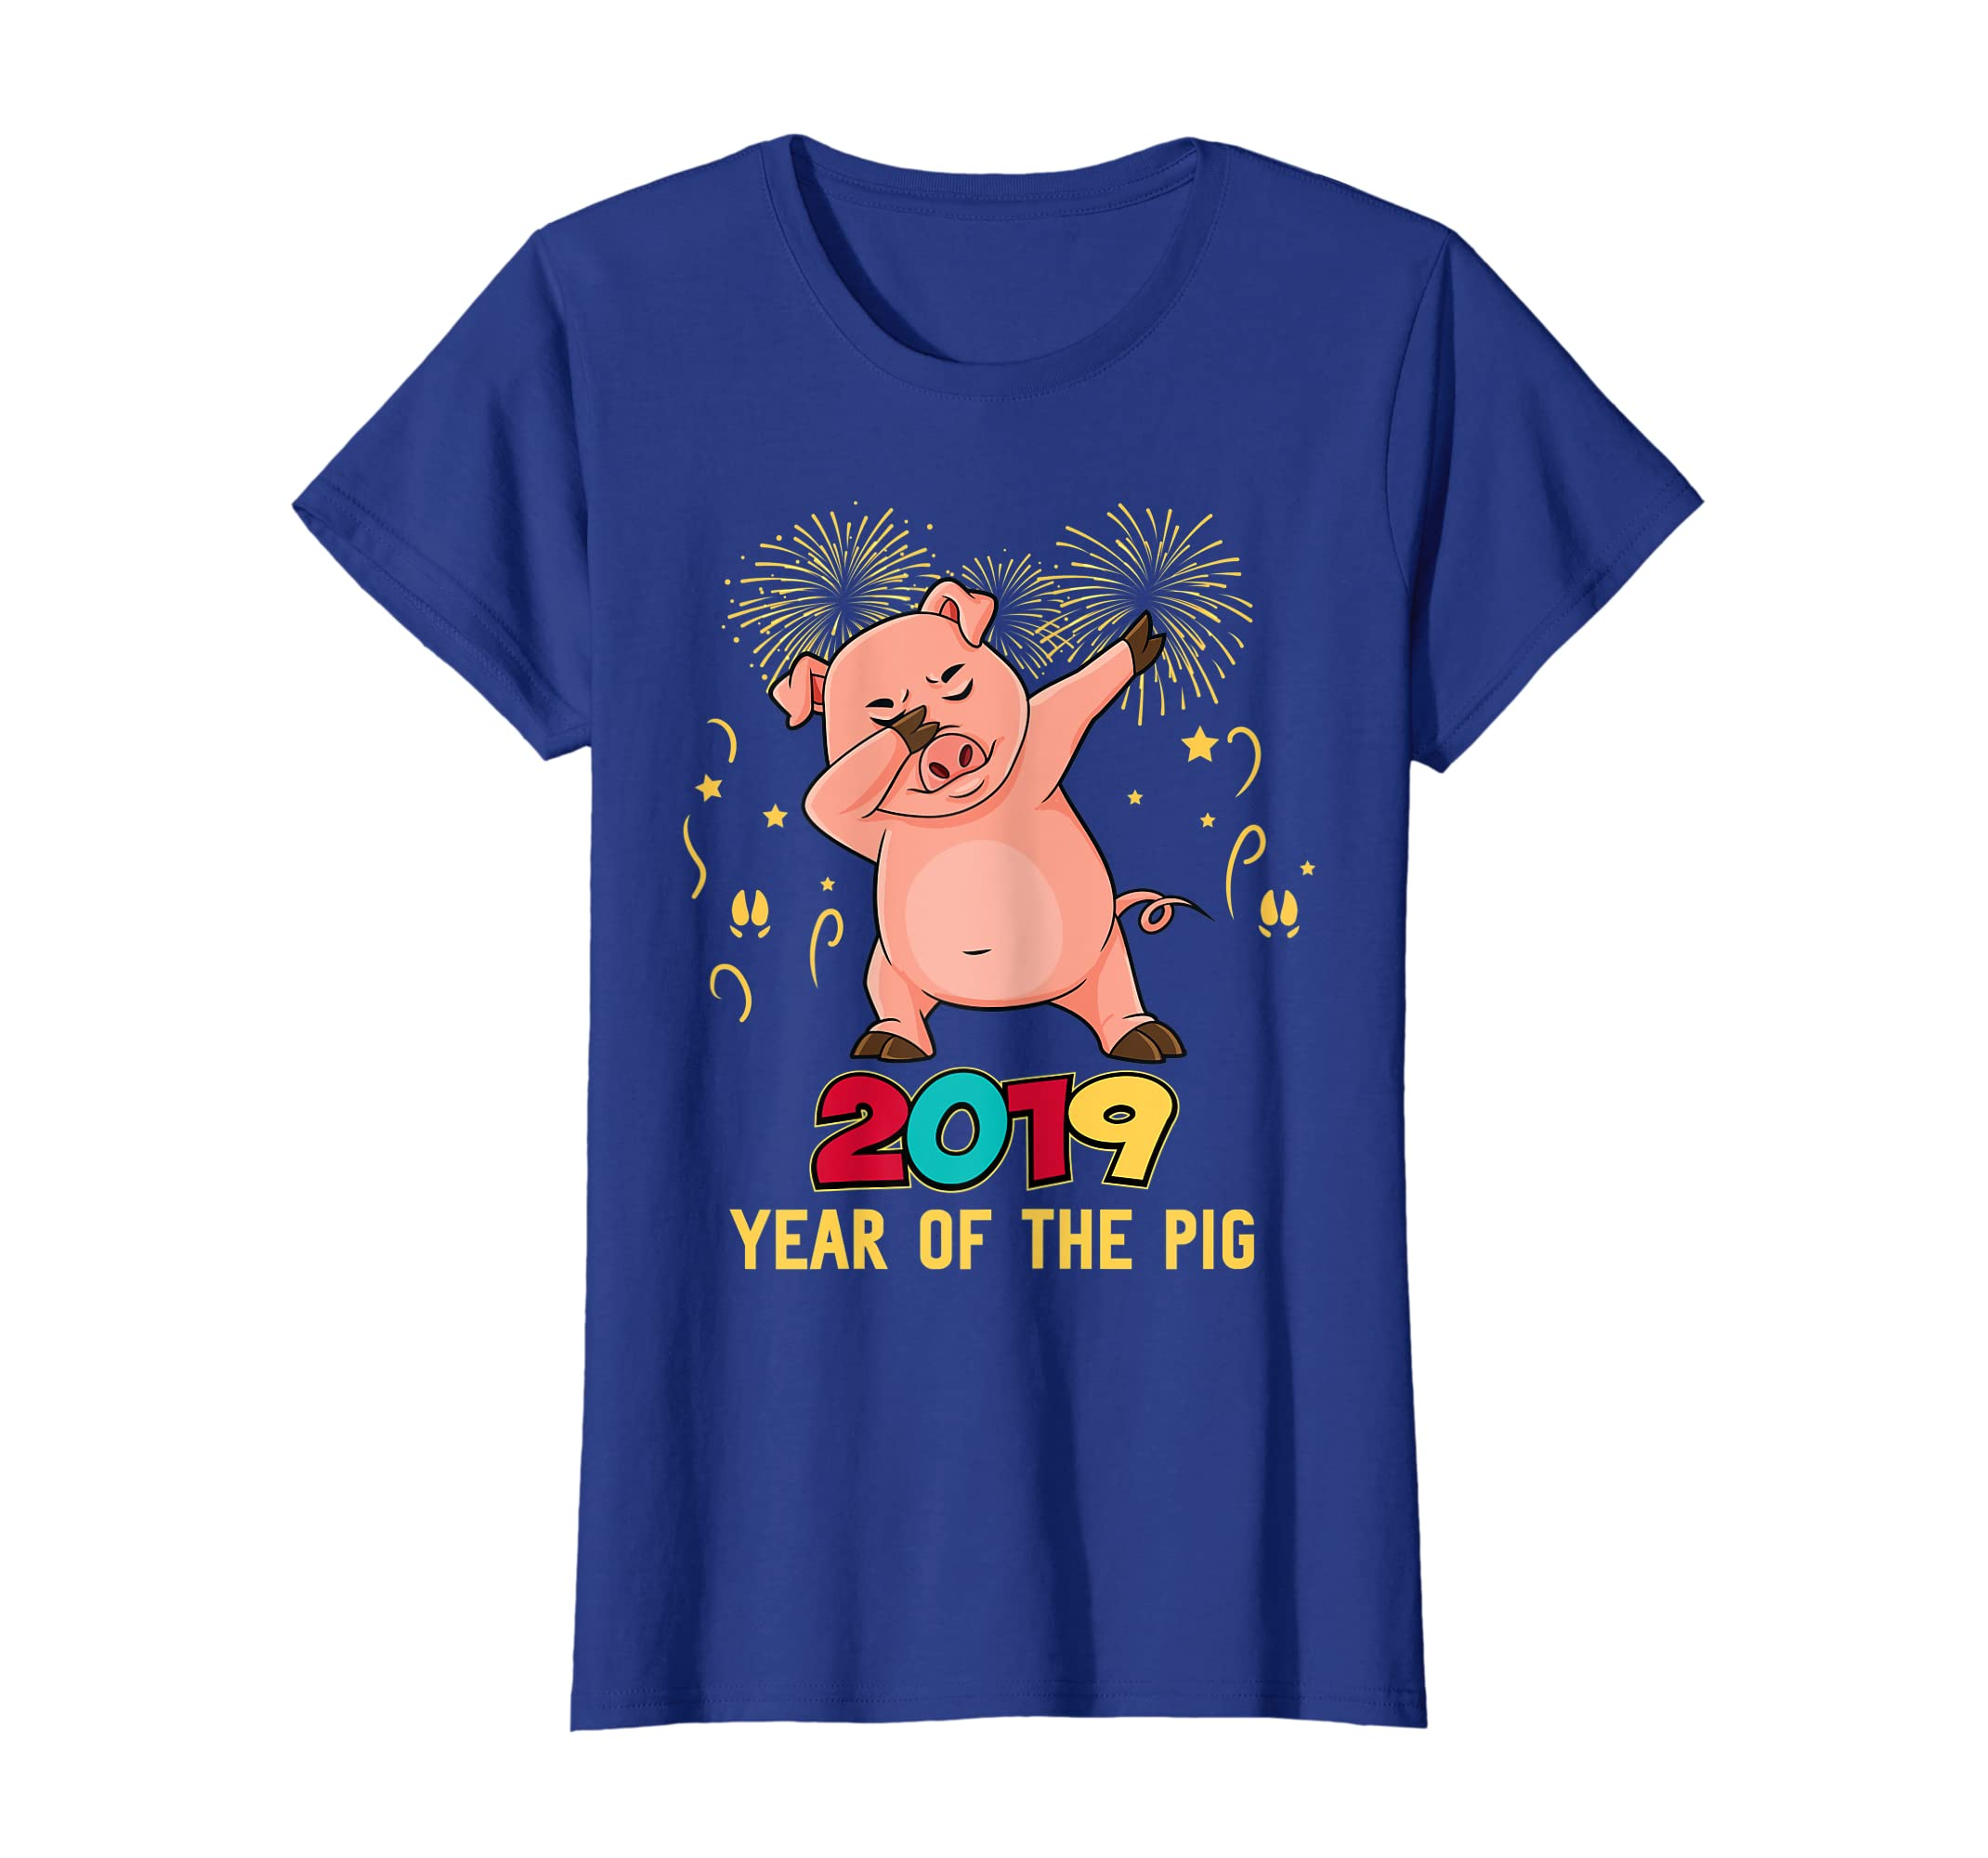 b411f0a0 Amazon.com: Dabbing Year Of The Pig Happy New Year 2019 Gift T Shirt:  Clothing